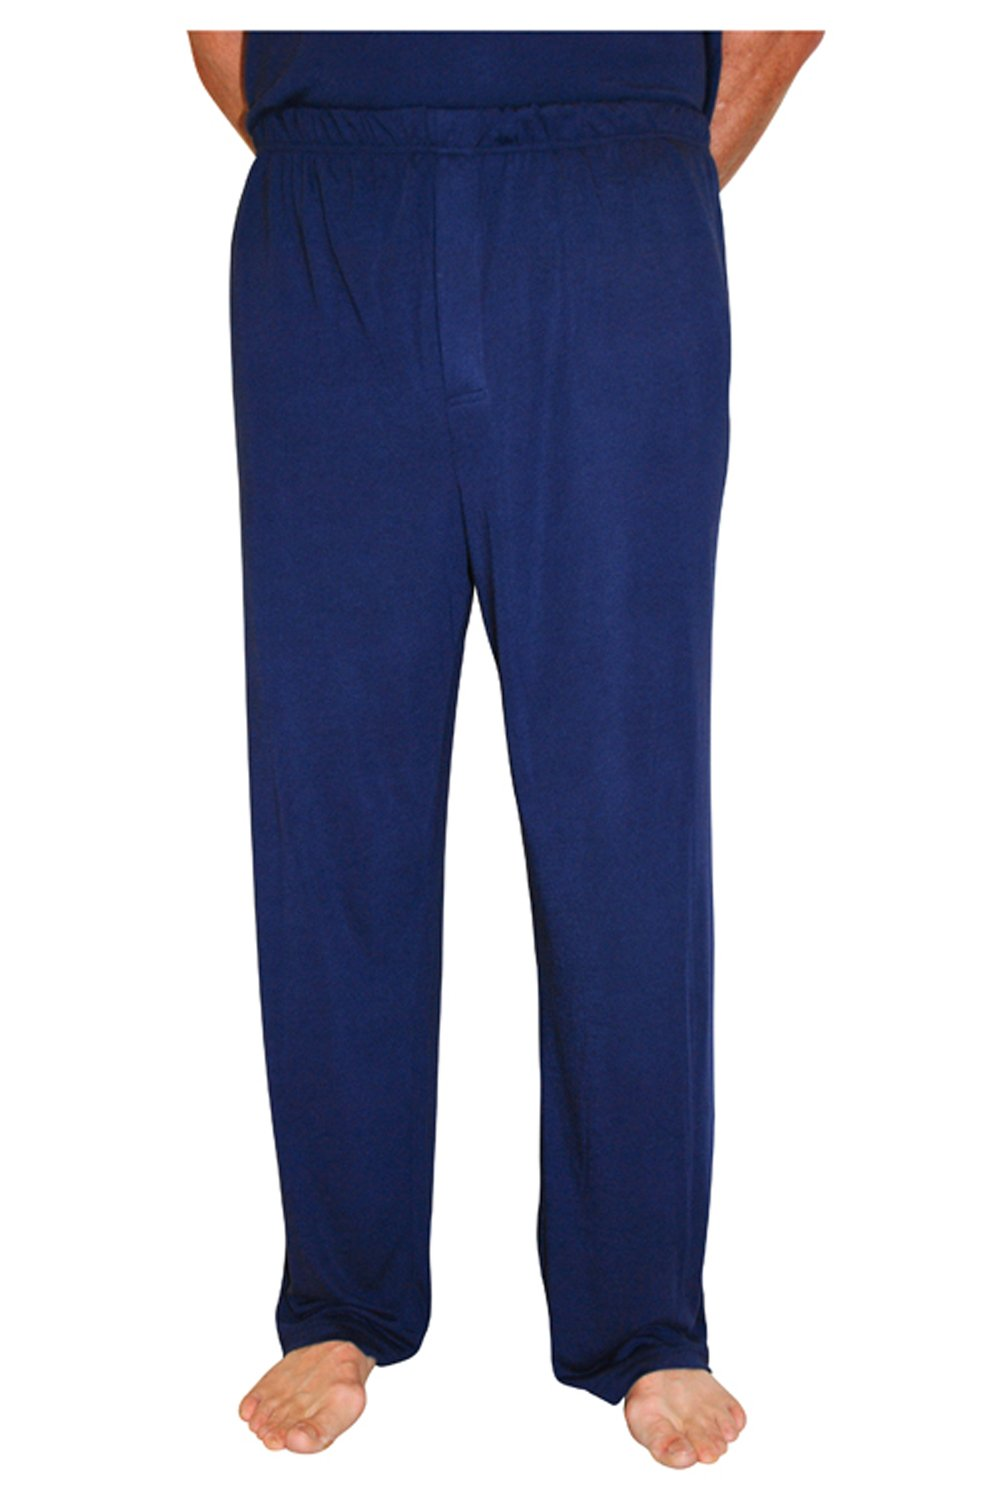 Cool-jams Moisture Wicking Men's Pajama Pant for Travel and Hot Nights (Medium, Navy)